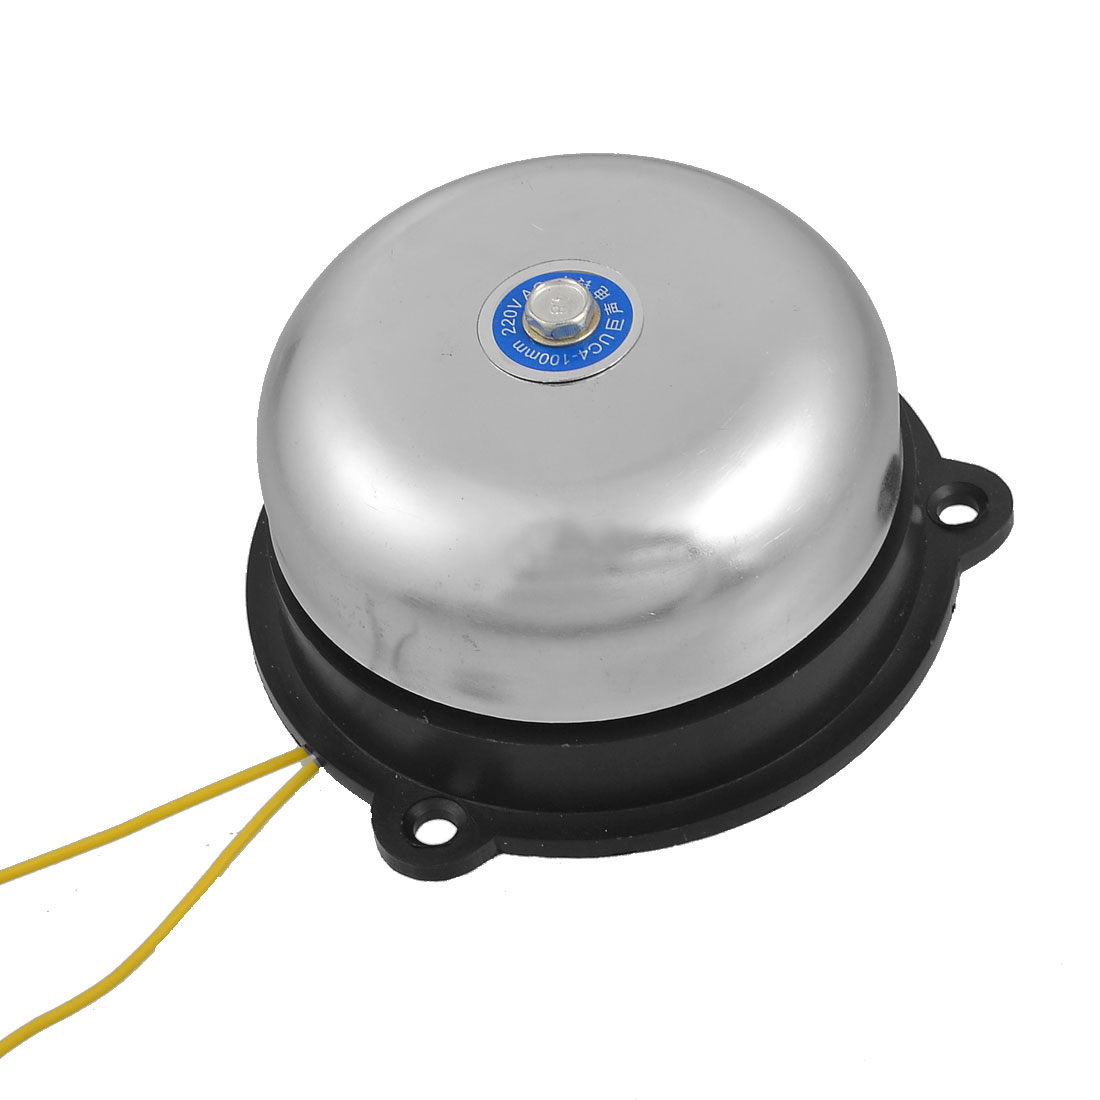 AC-220V-4-Dia-Fire-Alarm-Gong-Electric-Bell-for-School-Factory